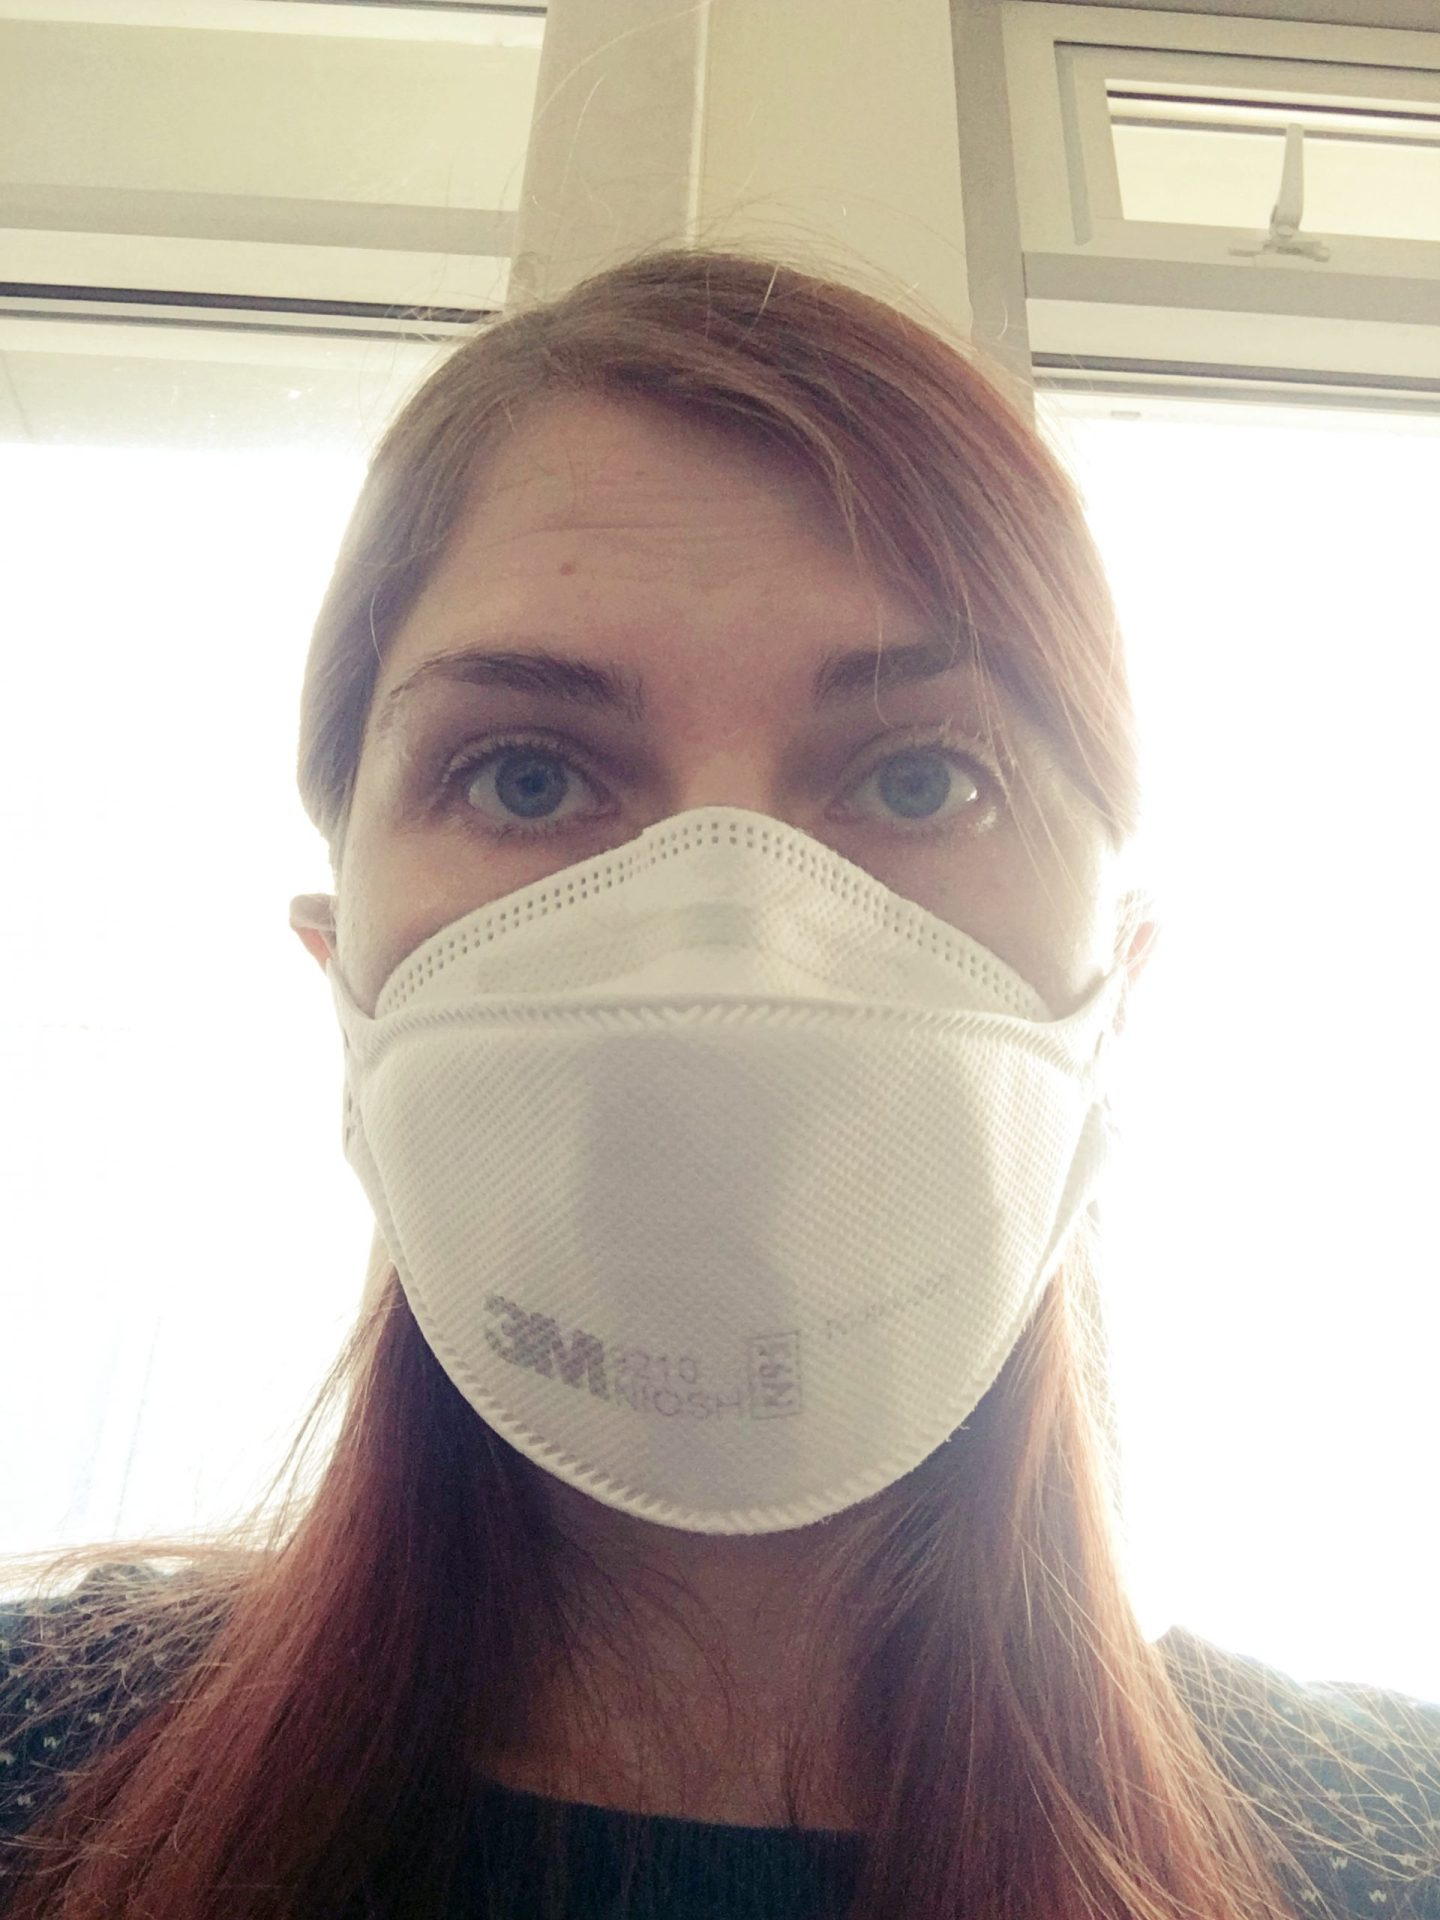 A head/shoulders photo of me in my mask waiting in the hospital, with the light from the window behind me.